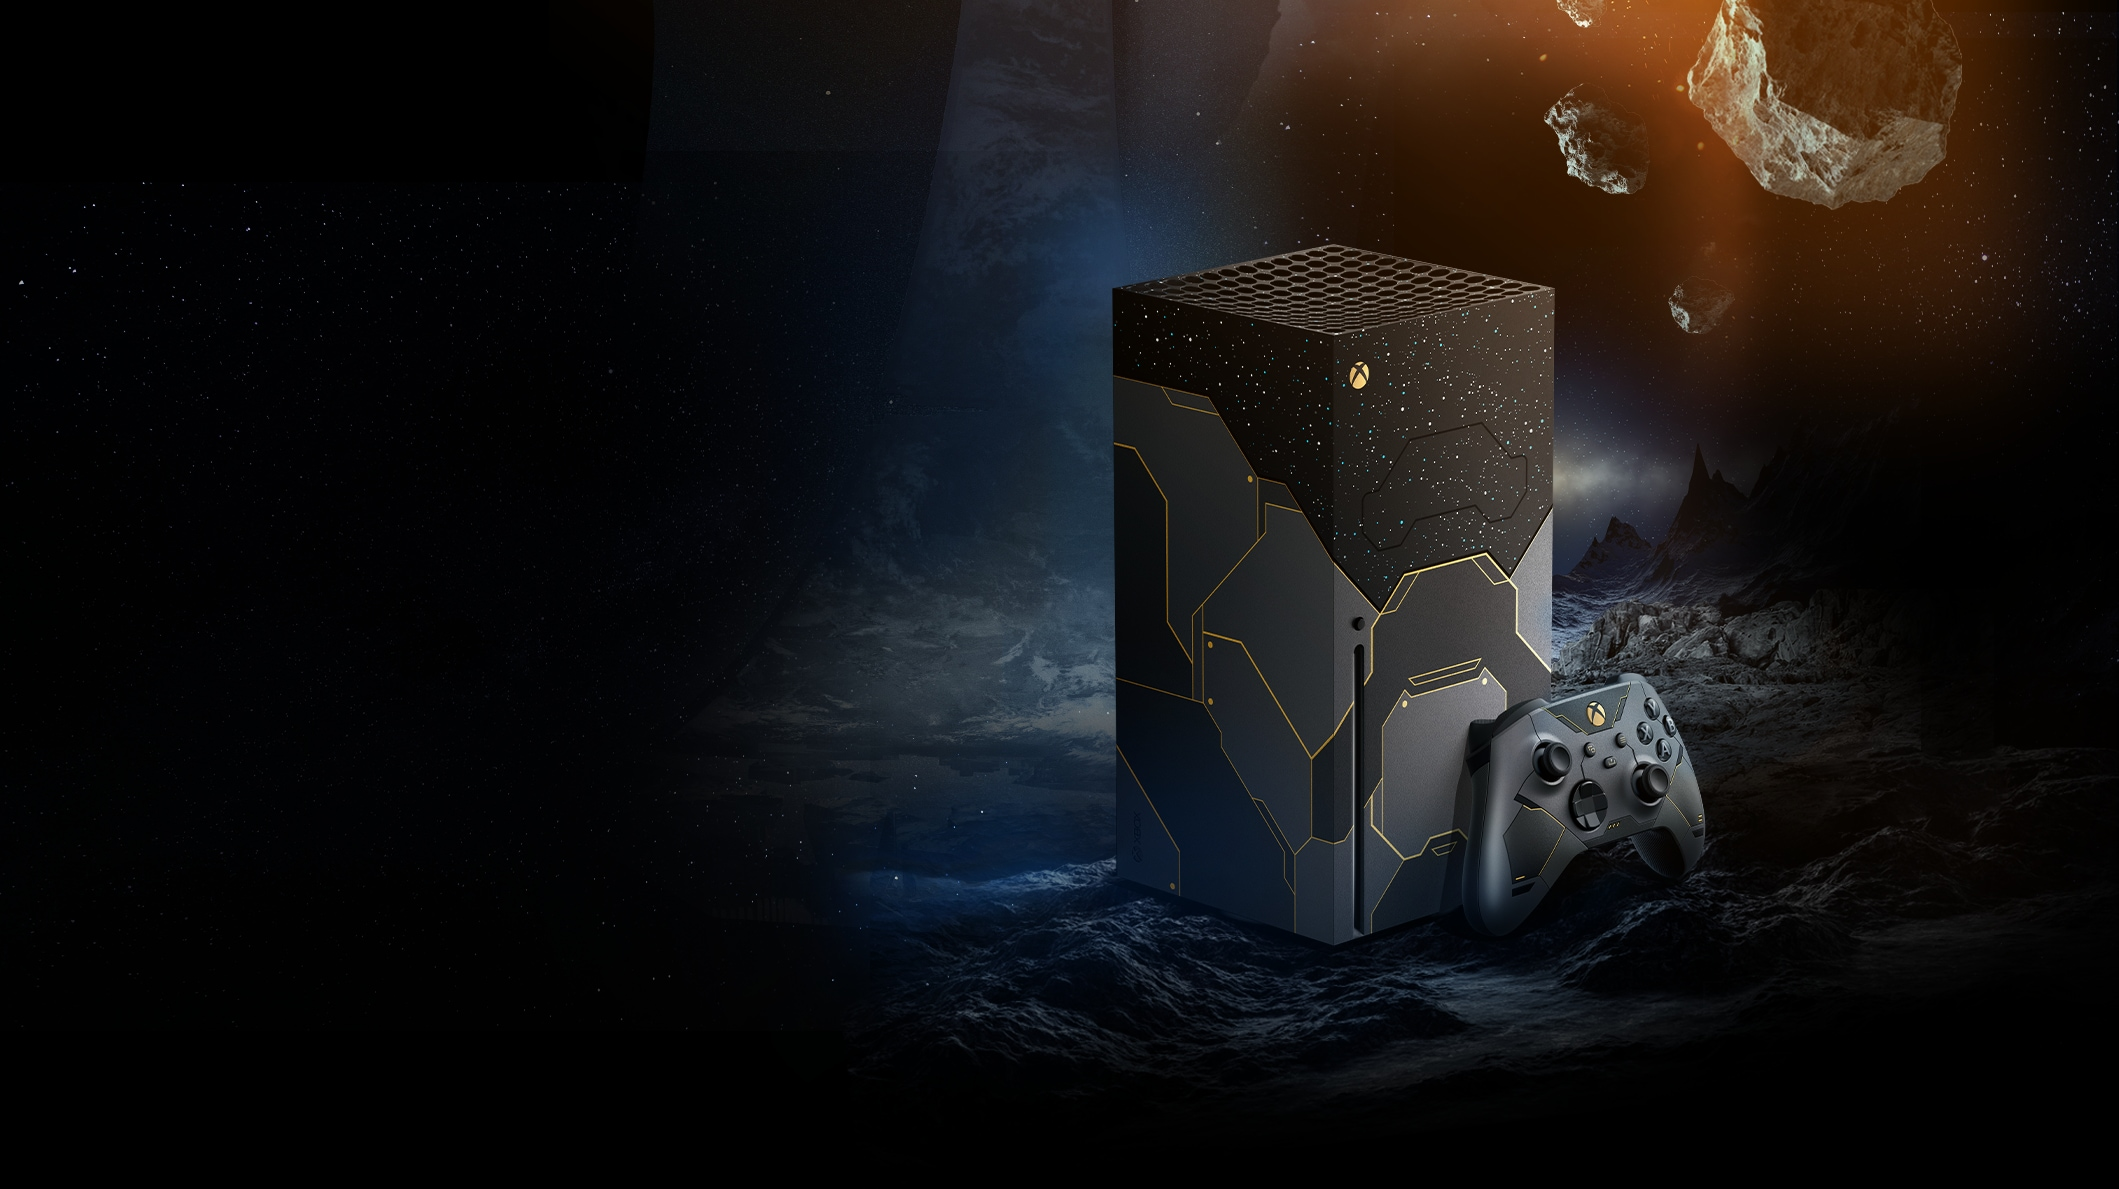 Xbox Series X – Halo Infinite Limited Edition Bundle with Master Chief in space planet environment